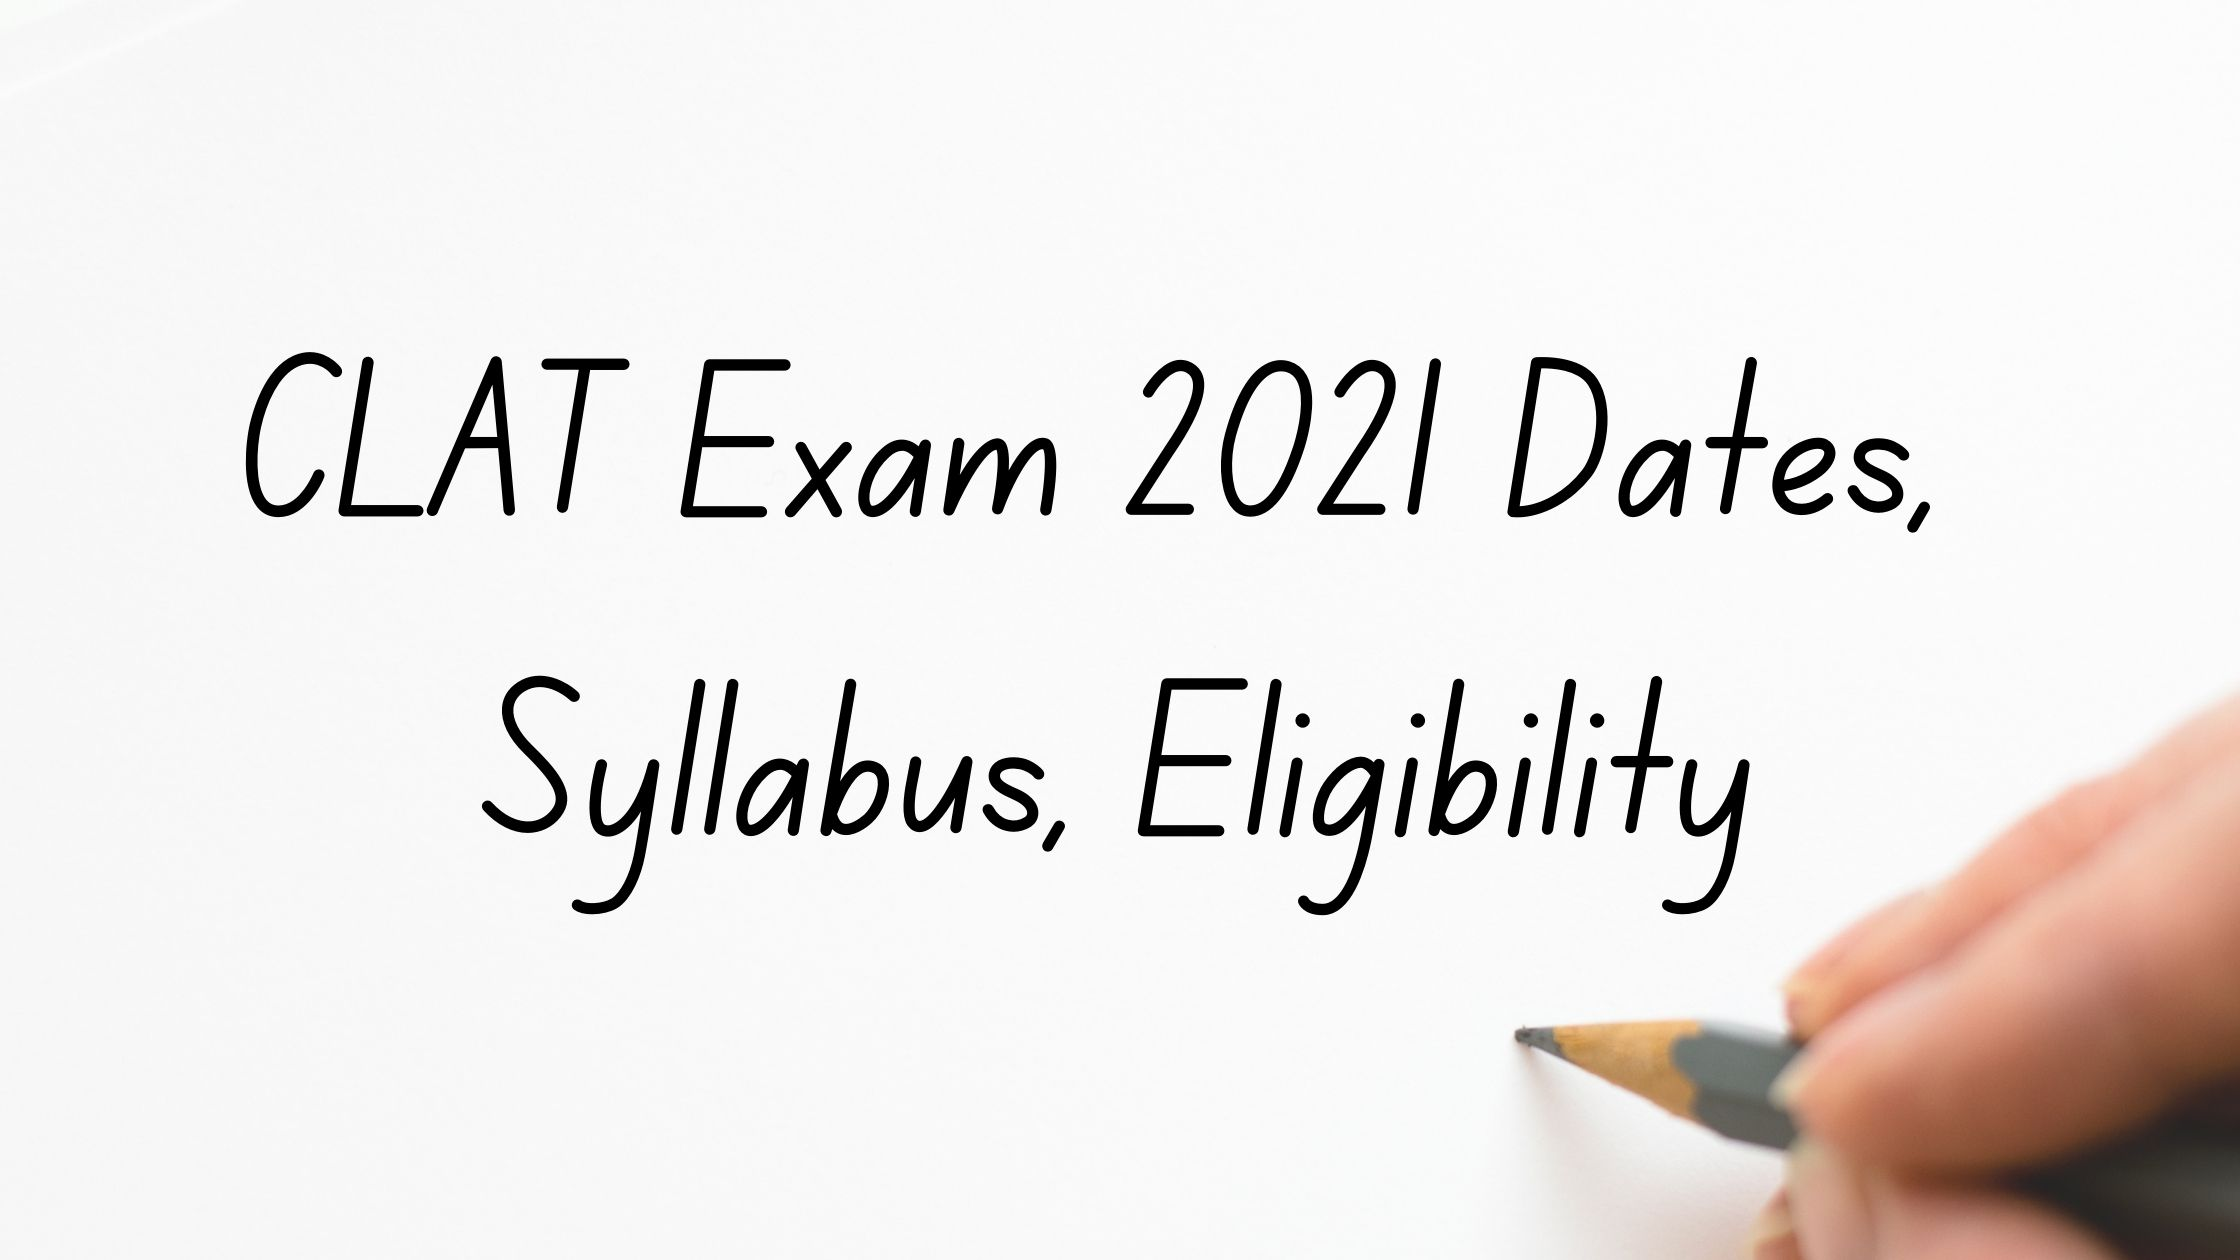 CLAT Exam 2021: CLAT Exam Dates, Syllabus, Eligibility